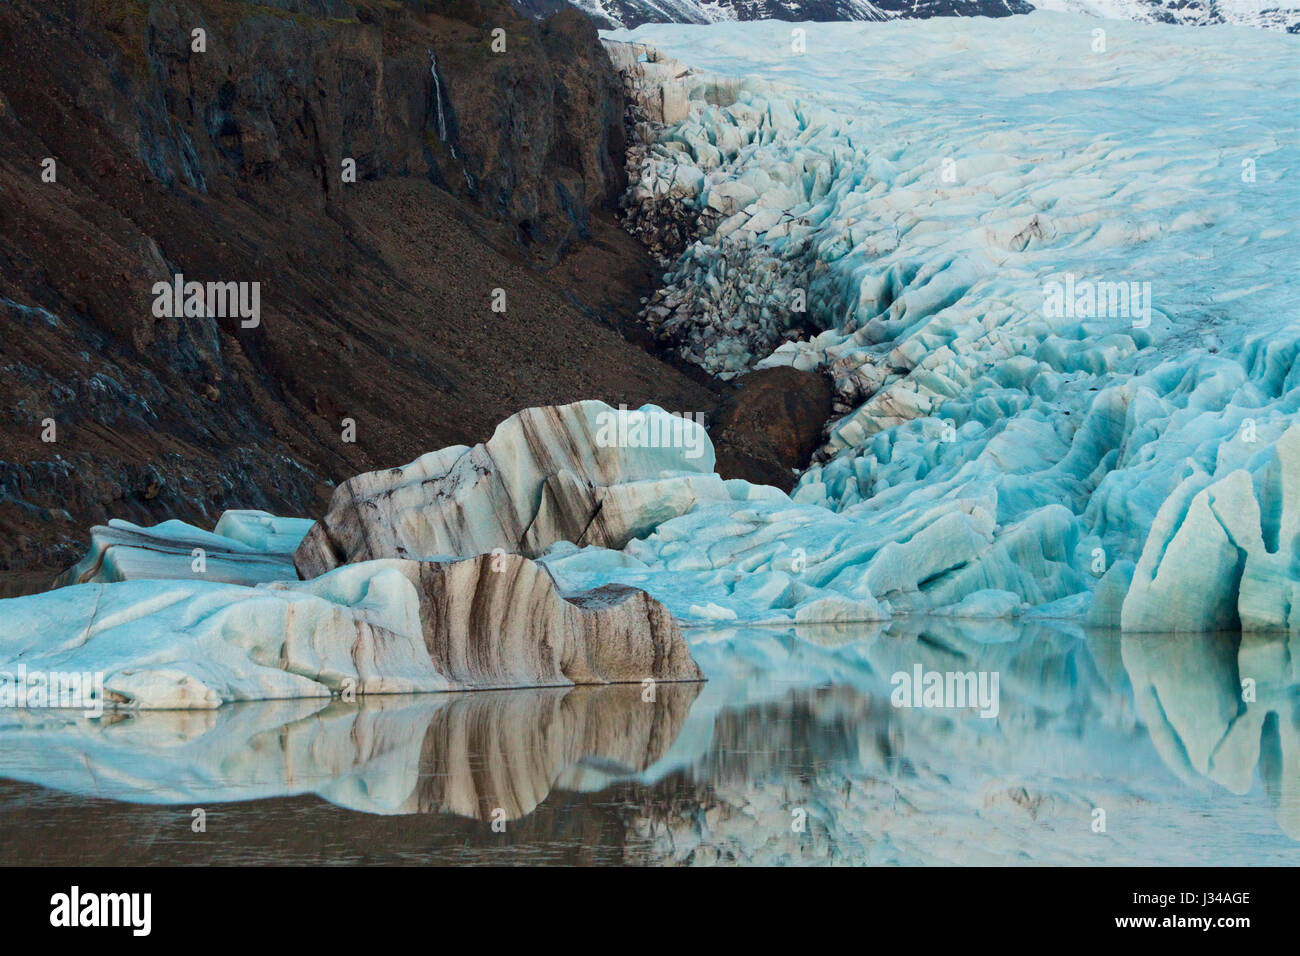 The rugged shapes of glacier ice, with its characteristic cobalt blue. Vatnajokull glacier, Iceland. - Stock Image